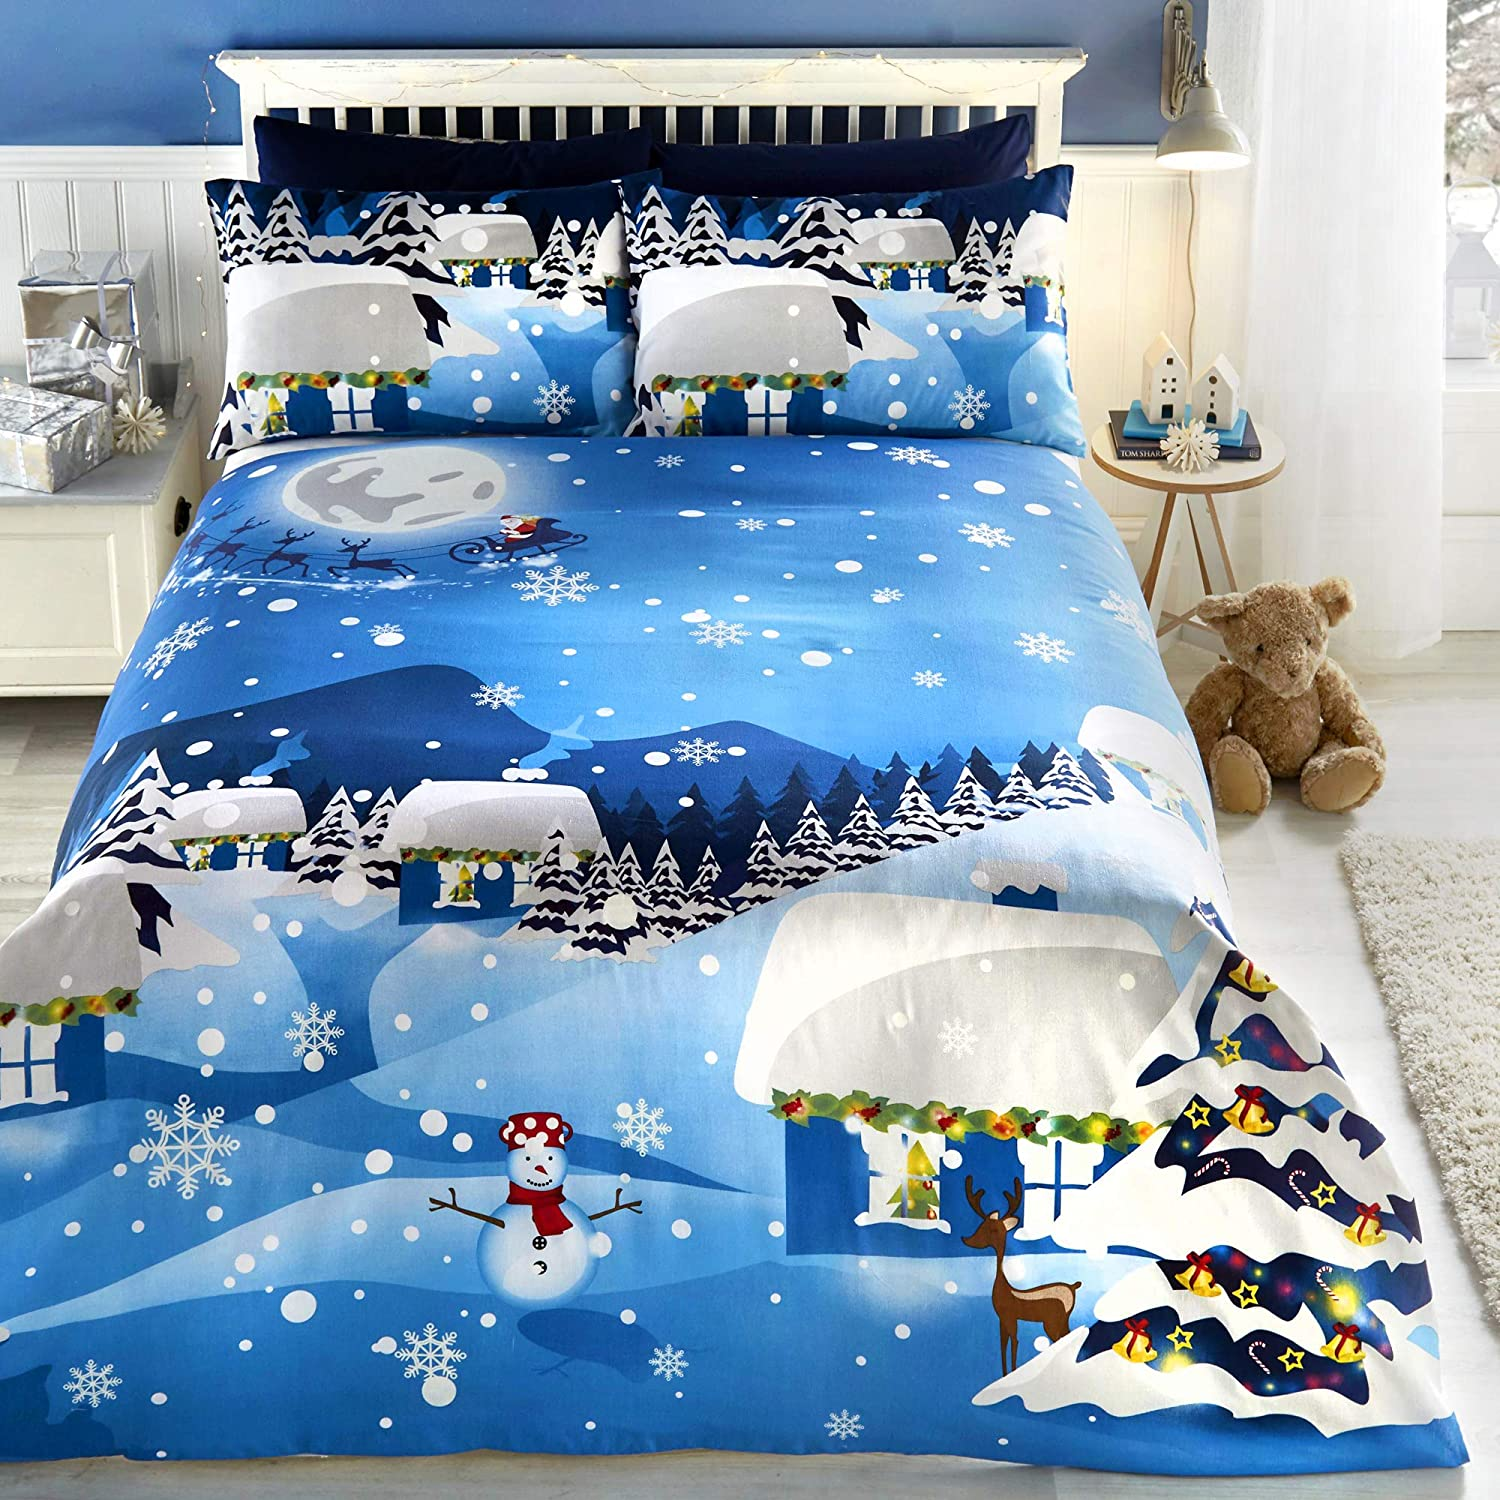 Bedlam Christmas Glow In The Dark Easy Care Duvet Cover Set Single Bed Size Multicolour Bedding Amazon Co Uk Kitchen Home